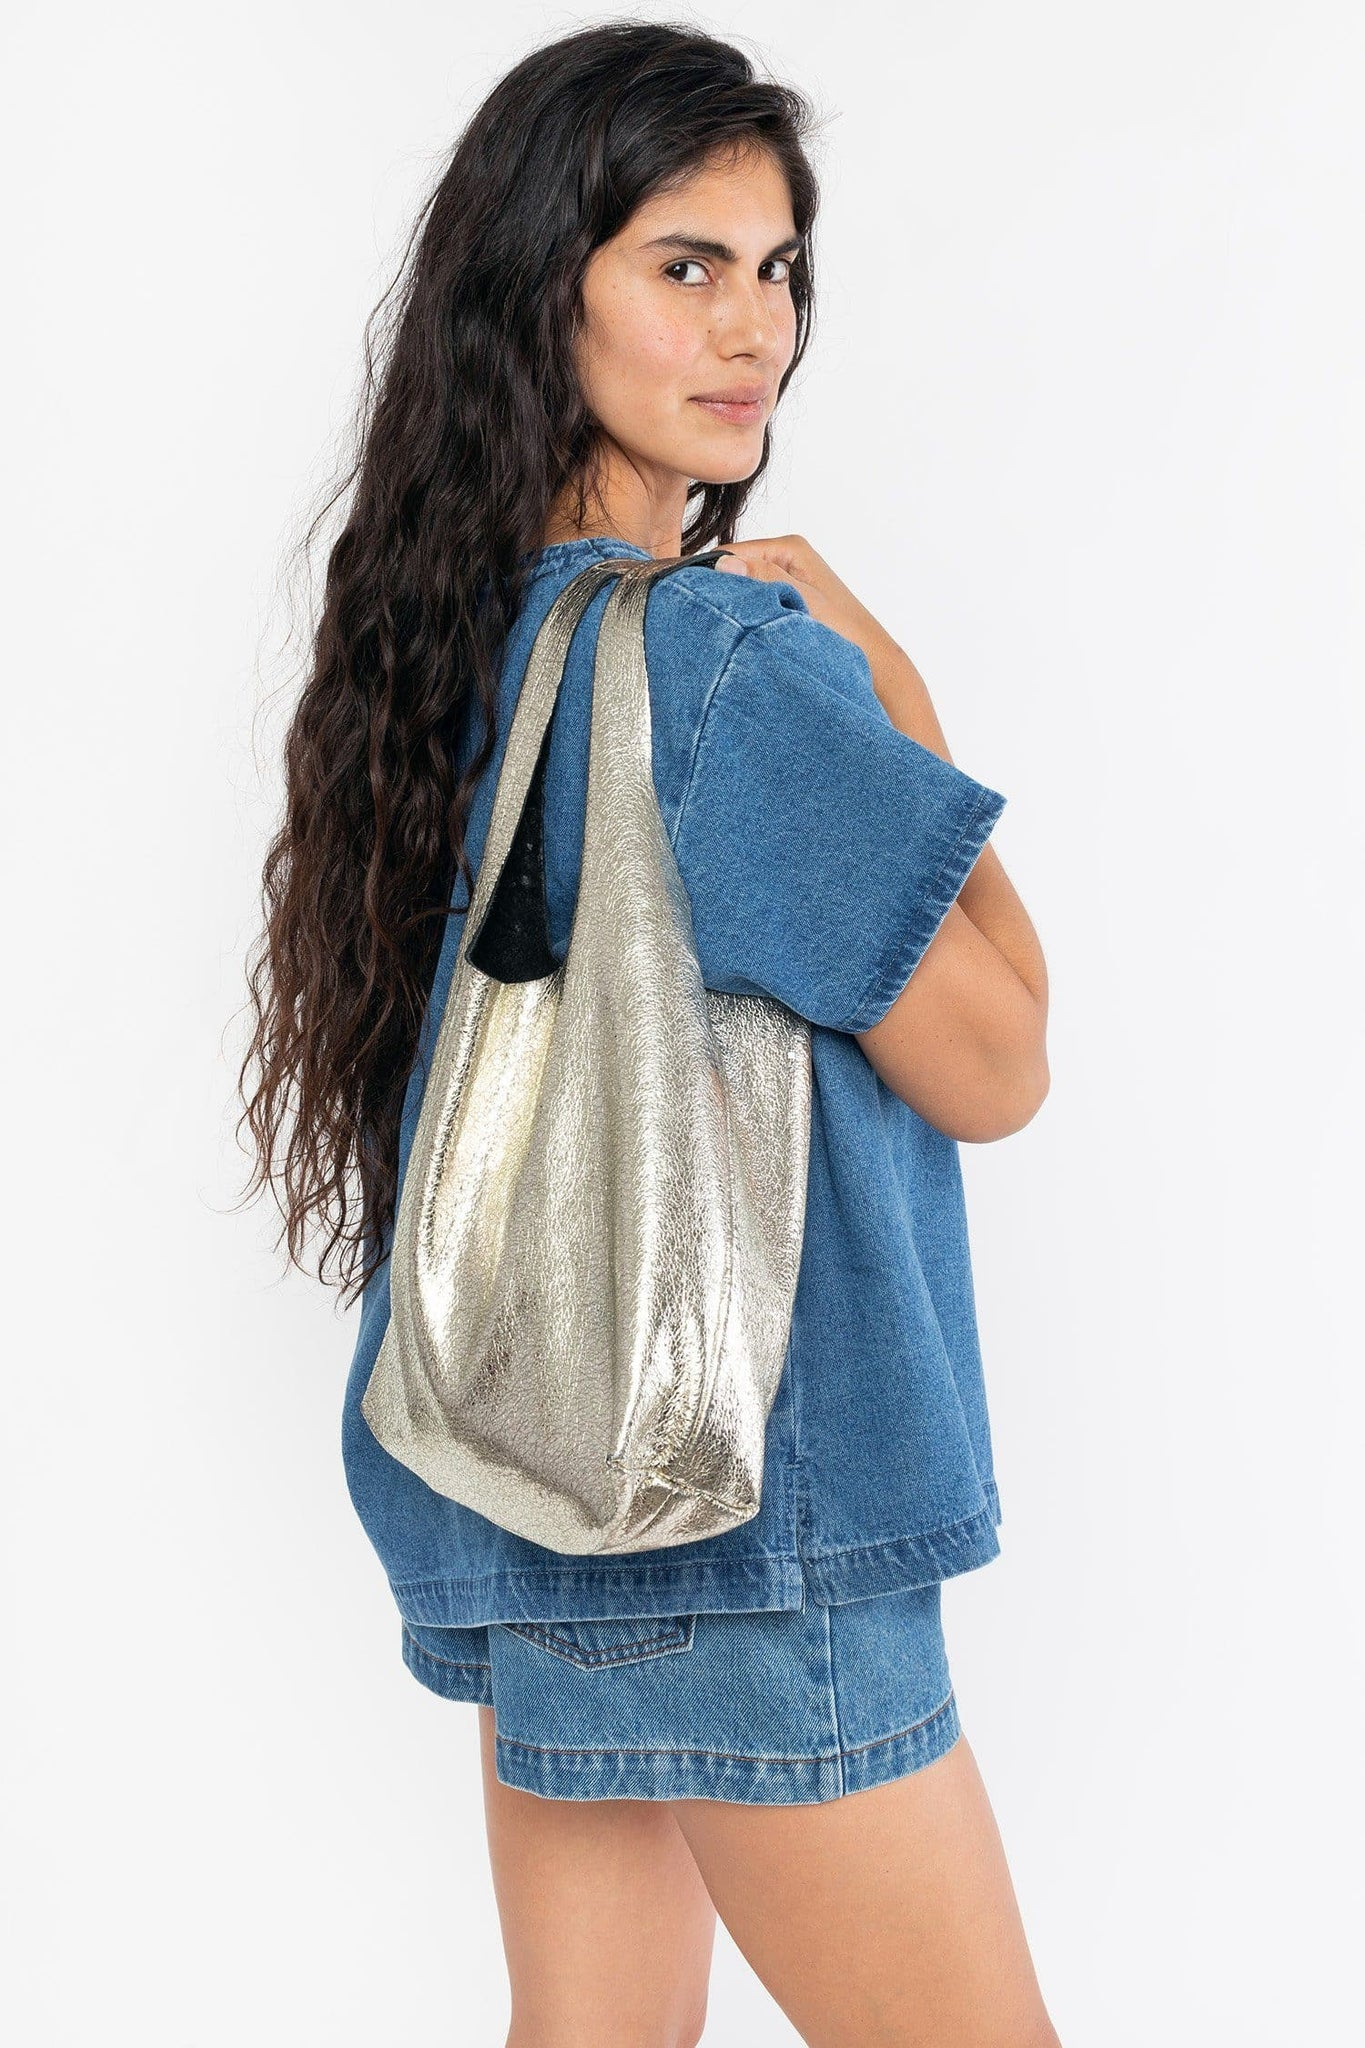 RLH3405 - Embellished Leather Shopping Bag